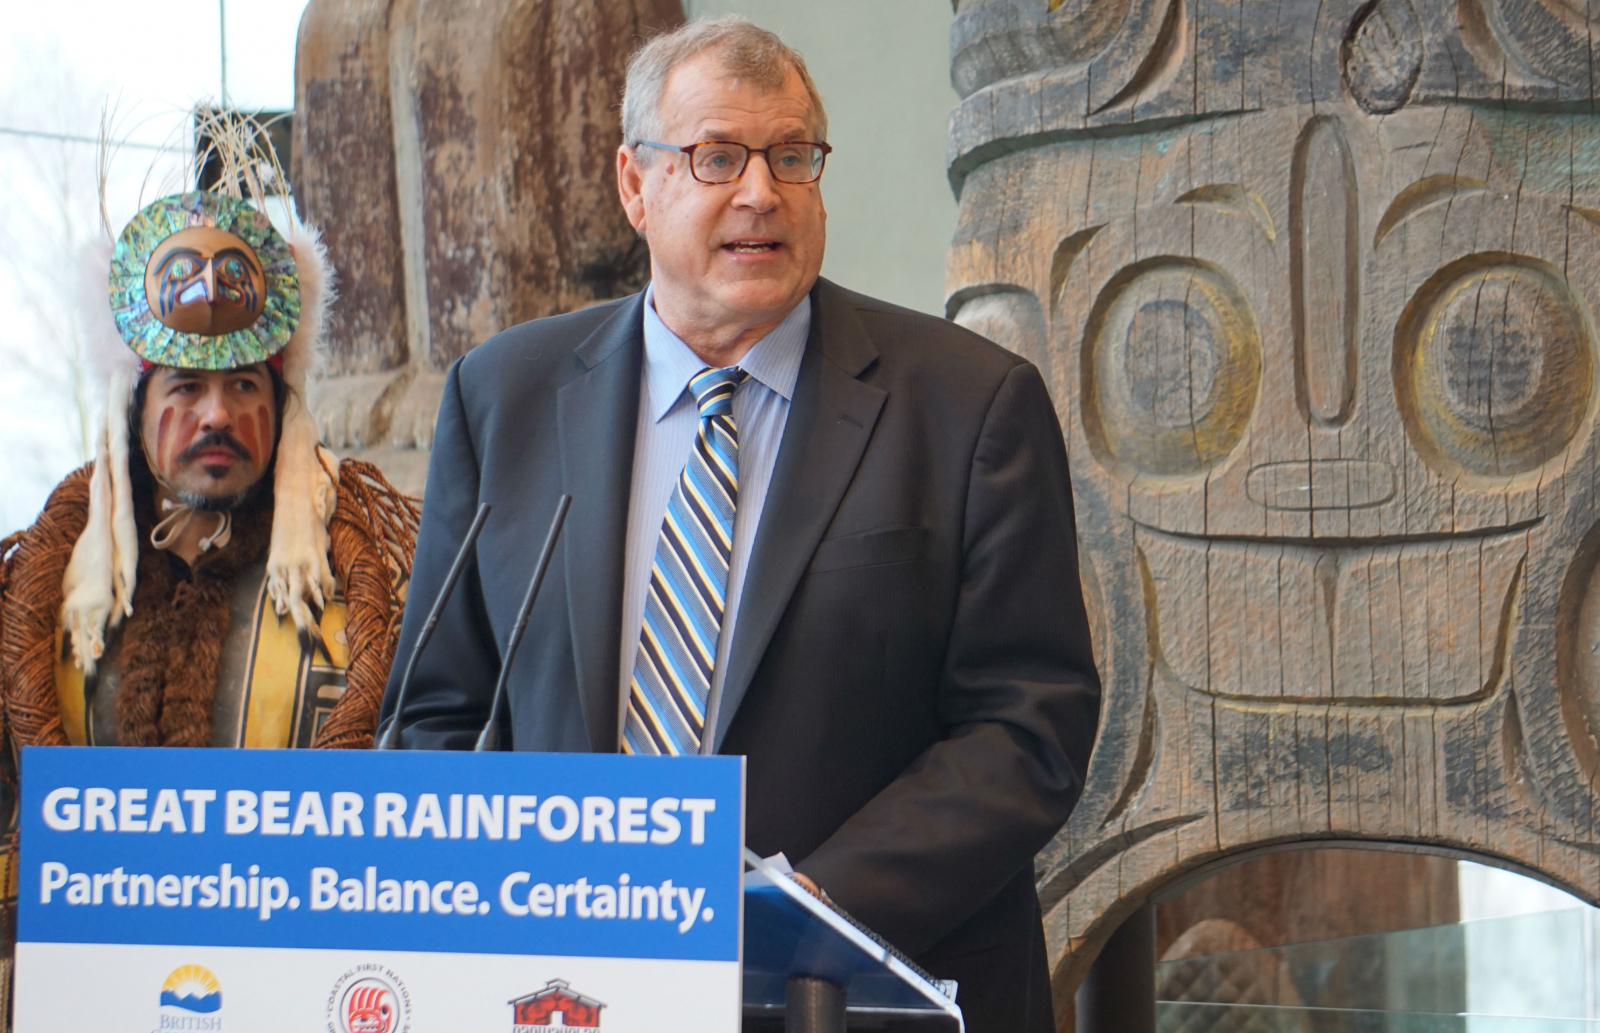 Ministry of Forests, Lands and Natural Resource Operations, Great Bear Rainforest, trophy hunt, grizzly bear hunt